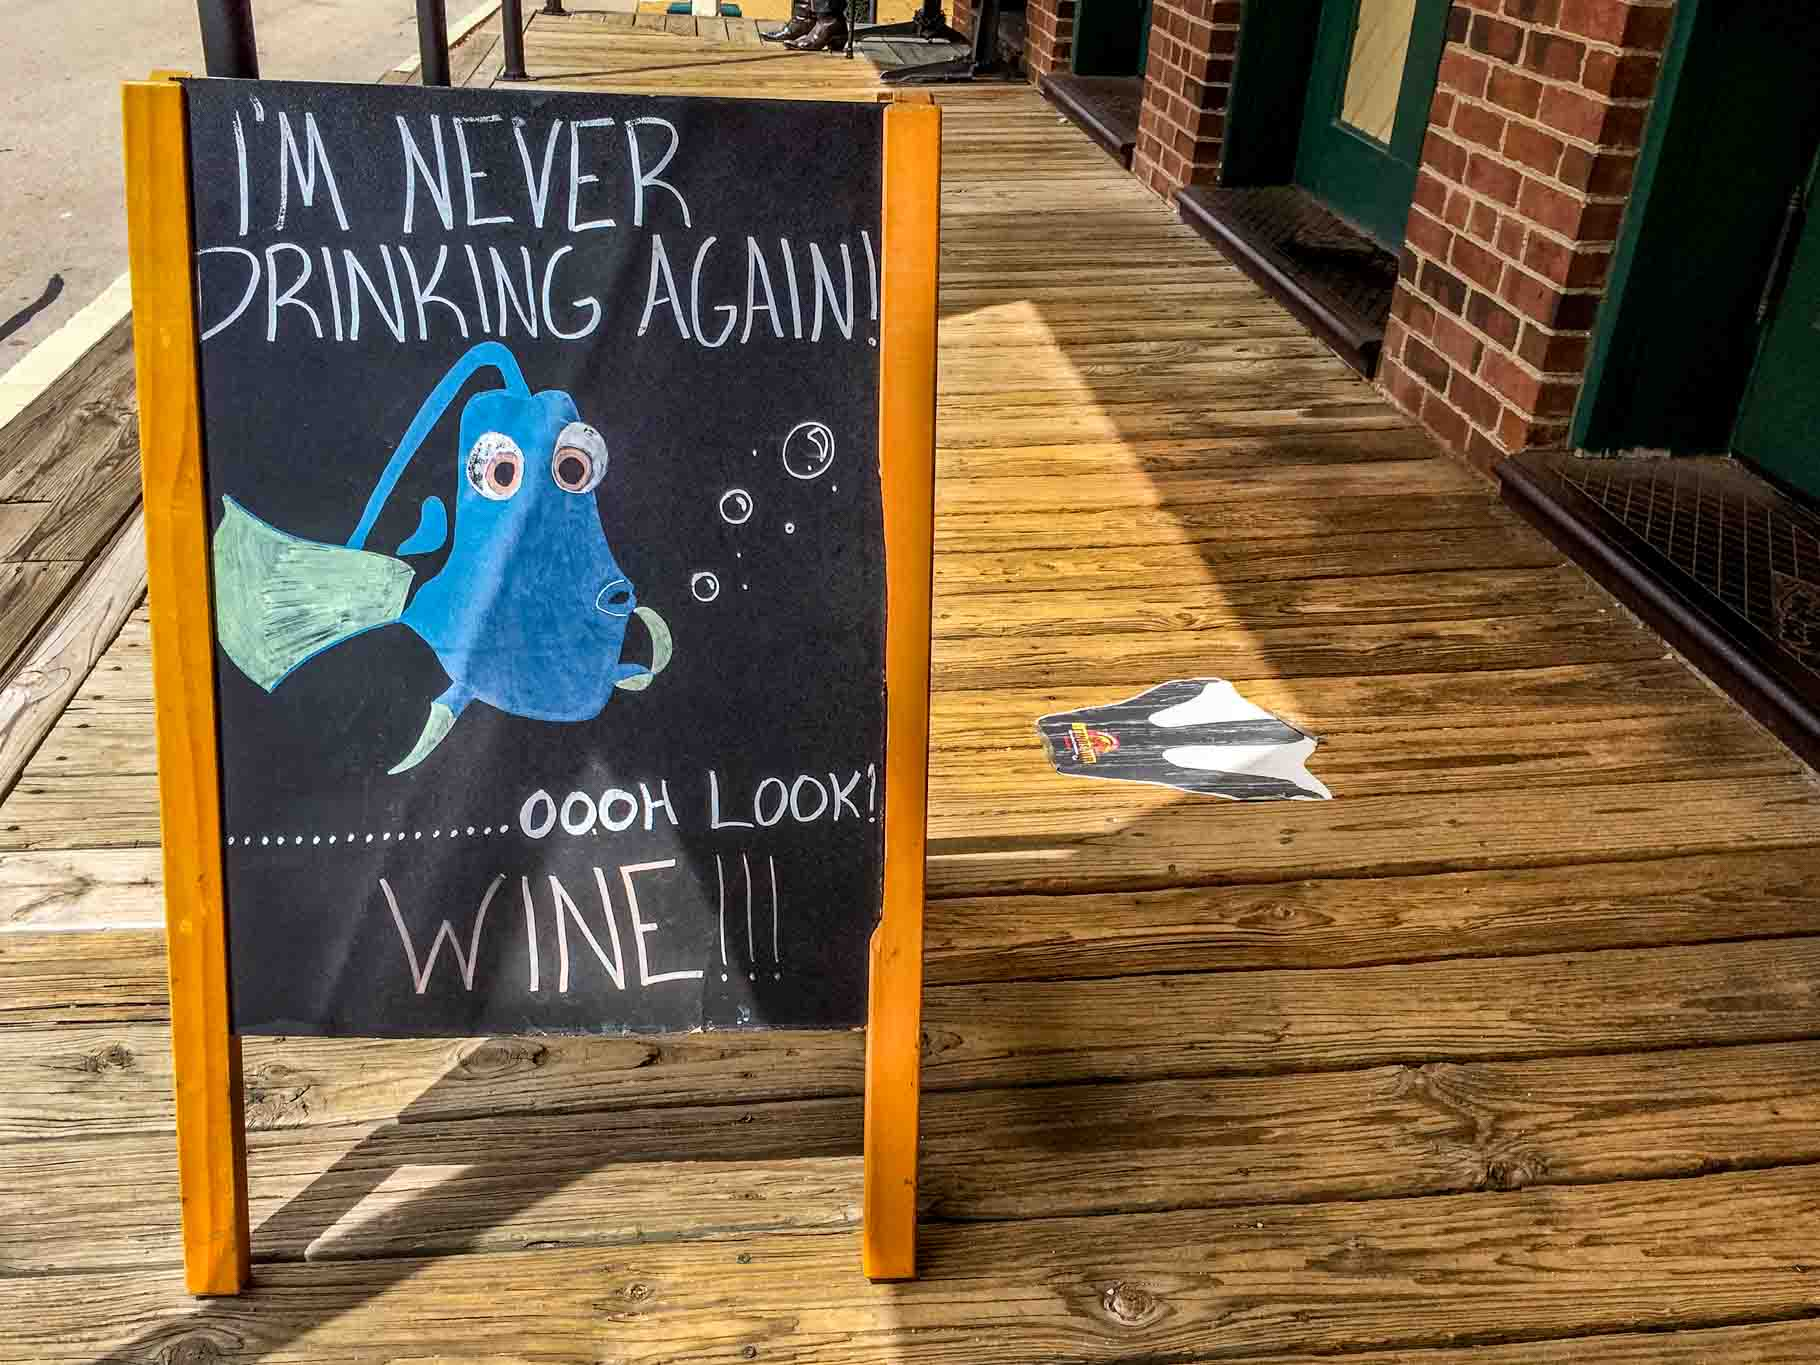 I'm Never Drinking Again sign in Grapevine, Texas